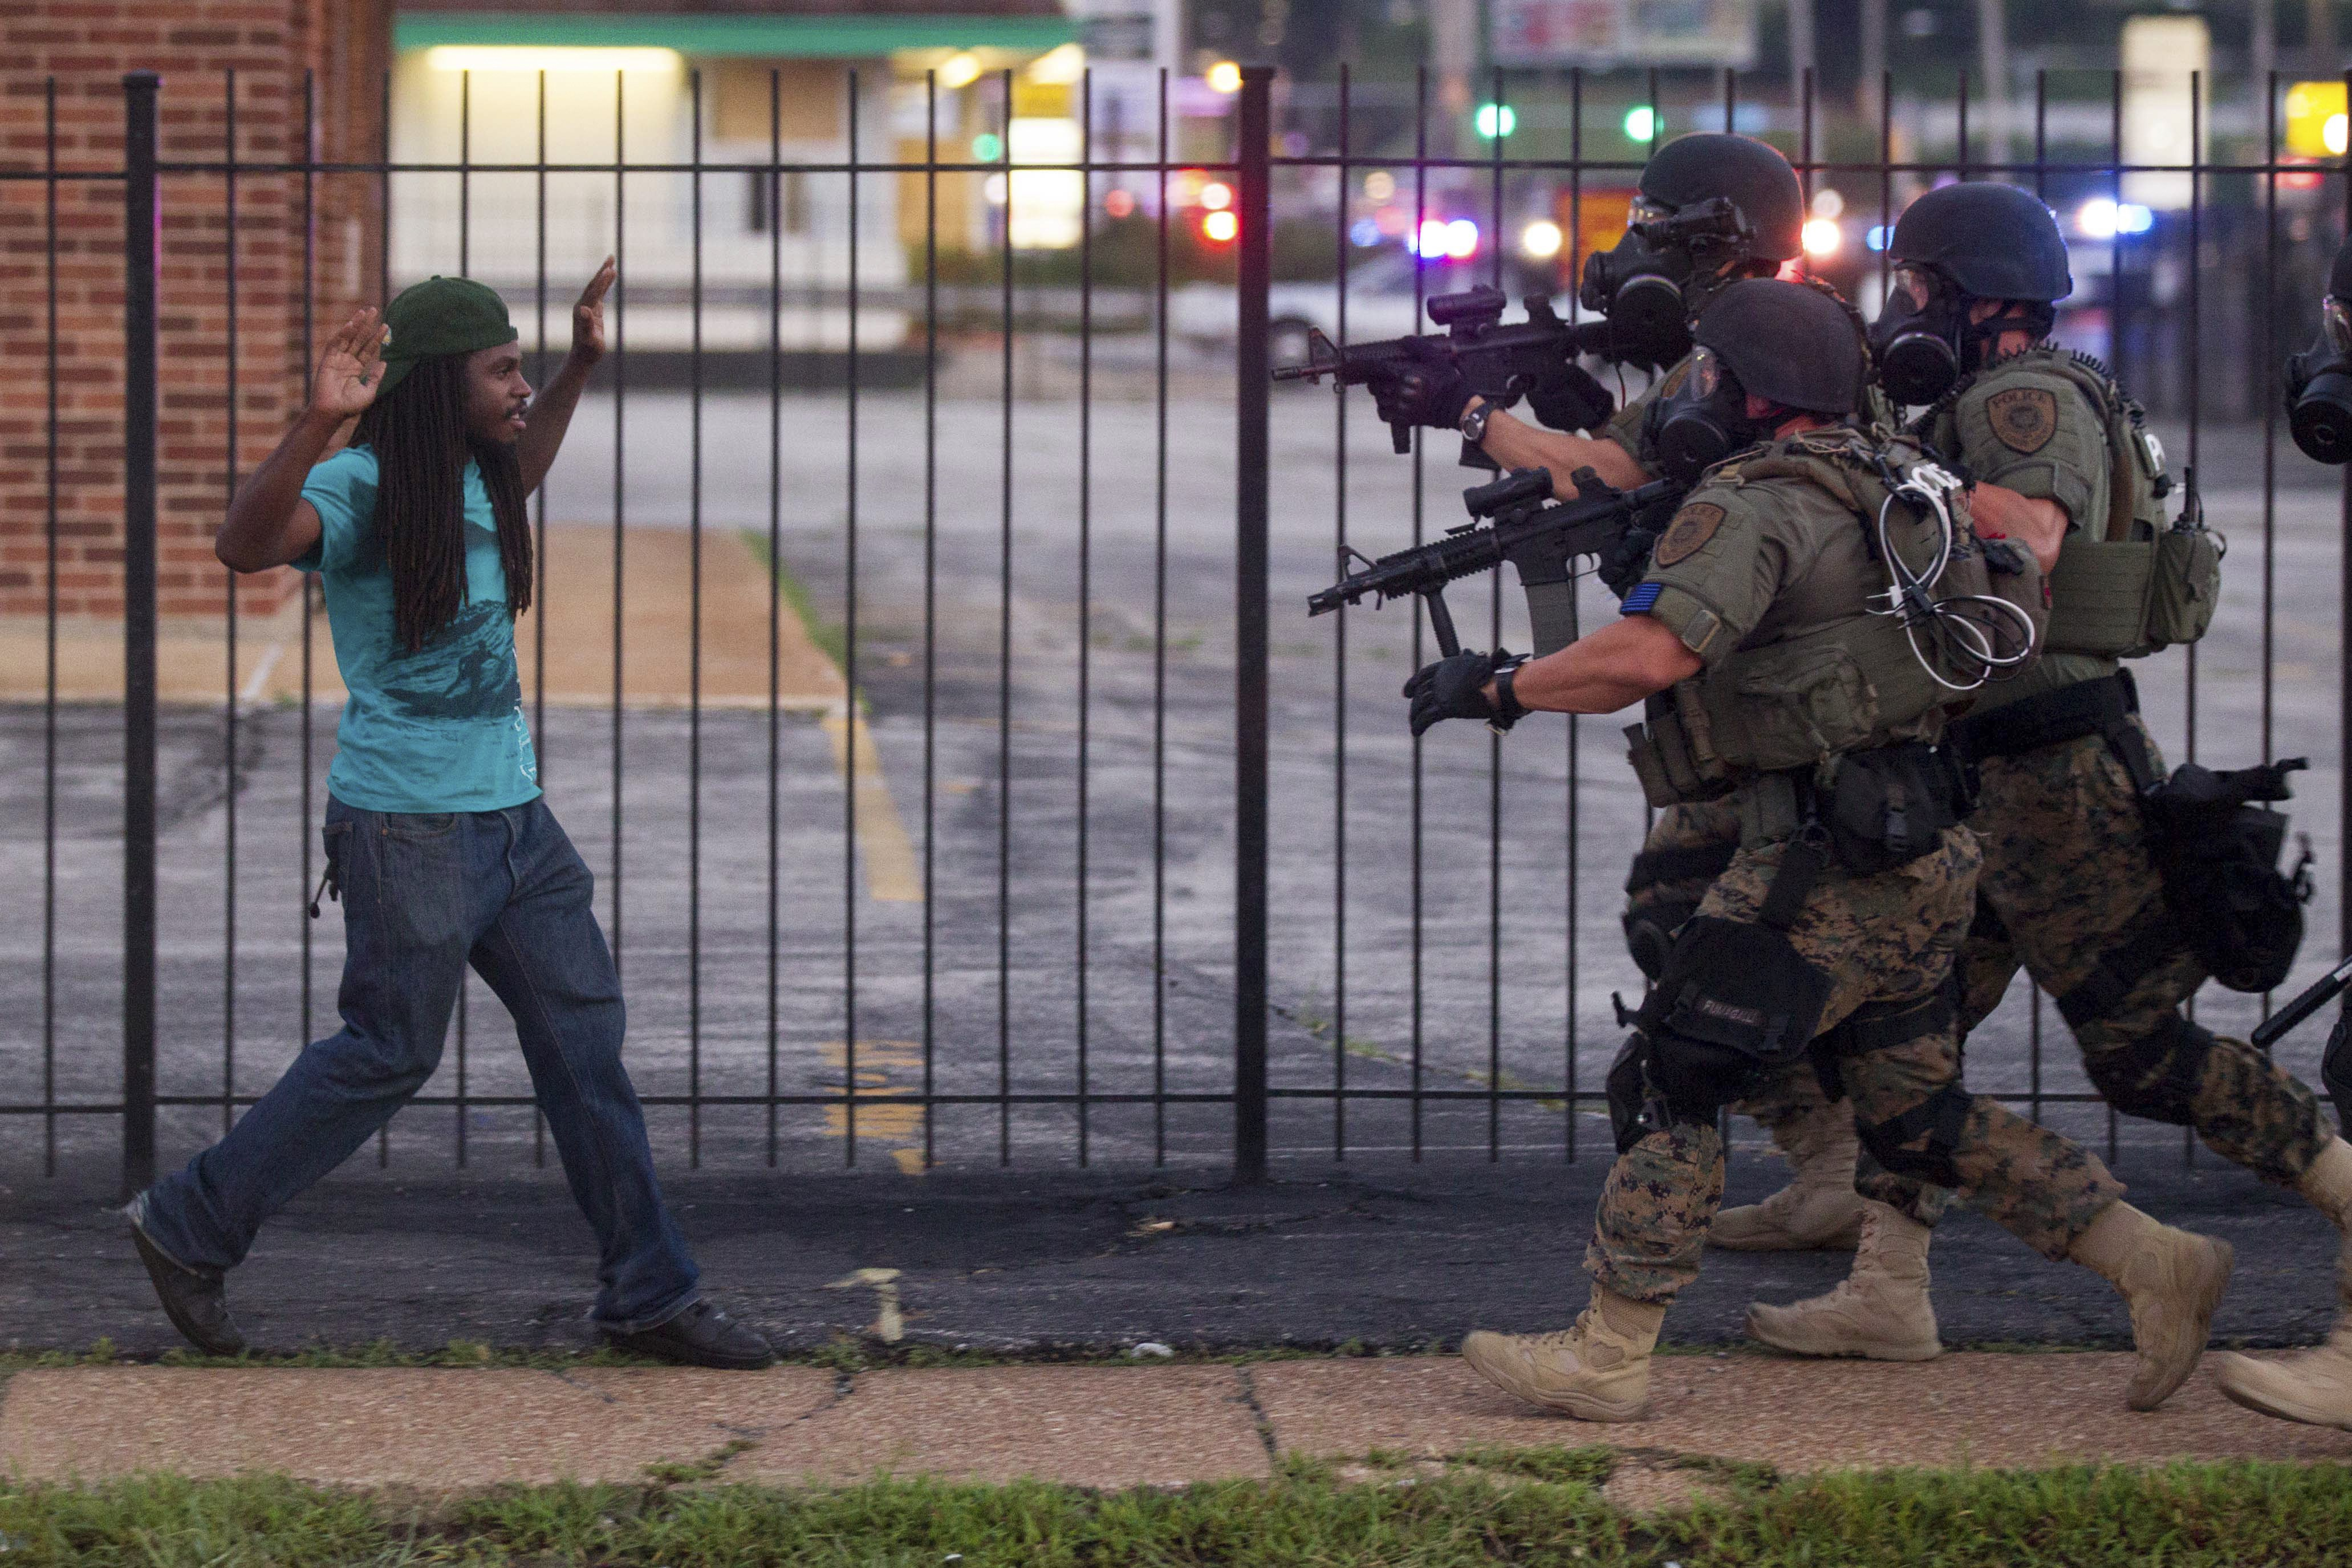 A man backs away as law enforcement officials close in on him and eventually detain him during protests over the death of Michael Brown, an unarmed black teenager killed by a police officer, in Ferguson, Mo., Aug. 11, 2014.